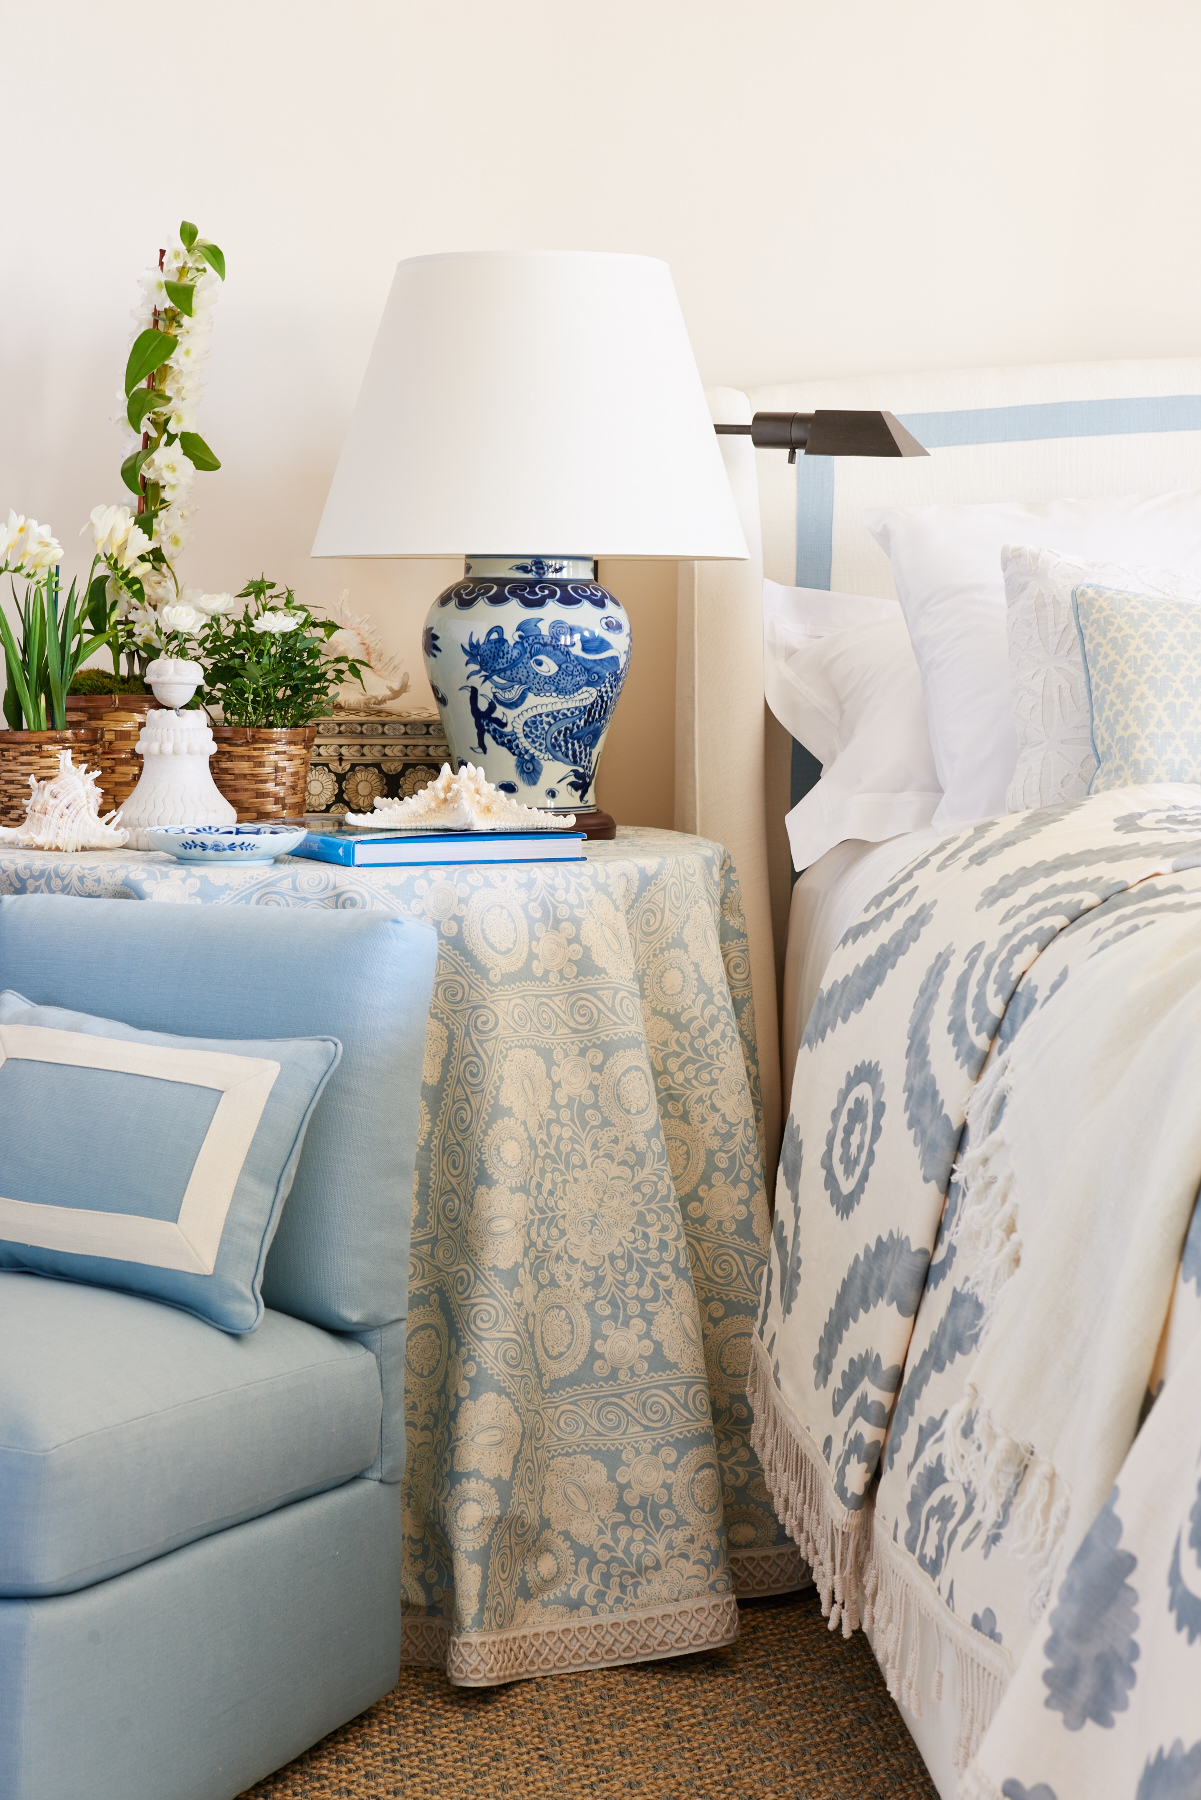 Light blue re-upholstered chair, table cloth, and bedding